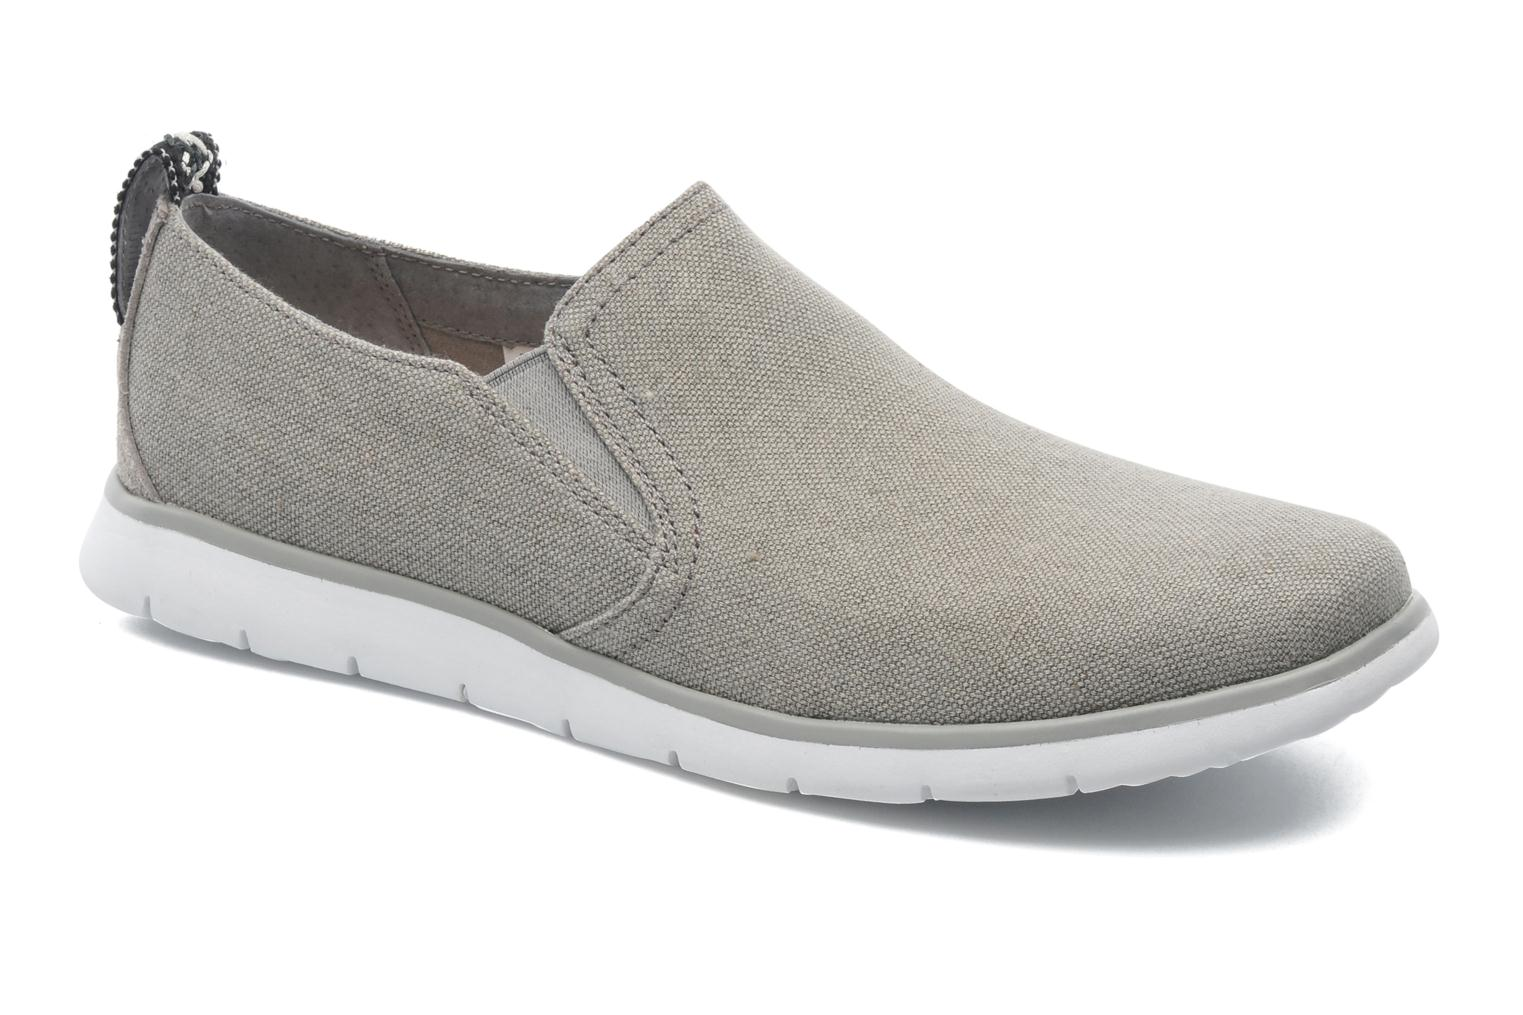 Sneakers Conley by Ugg Australia